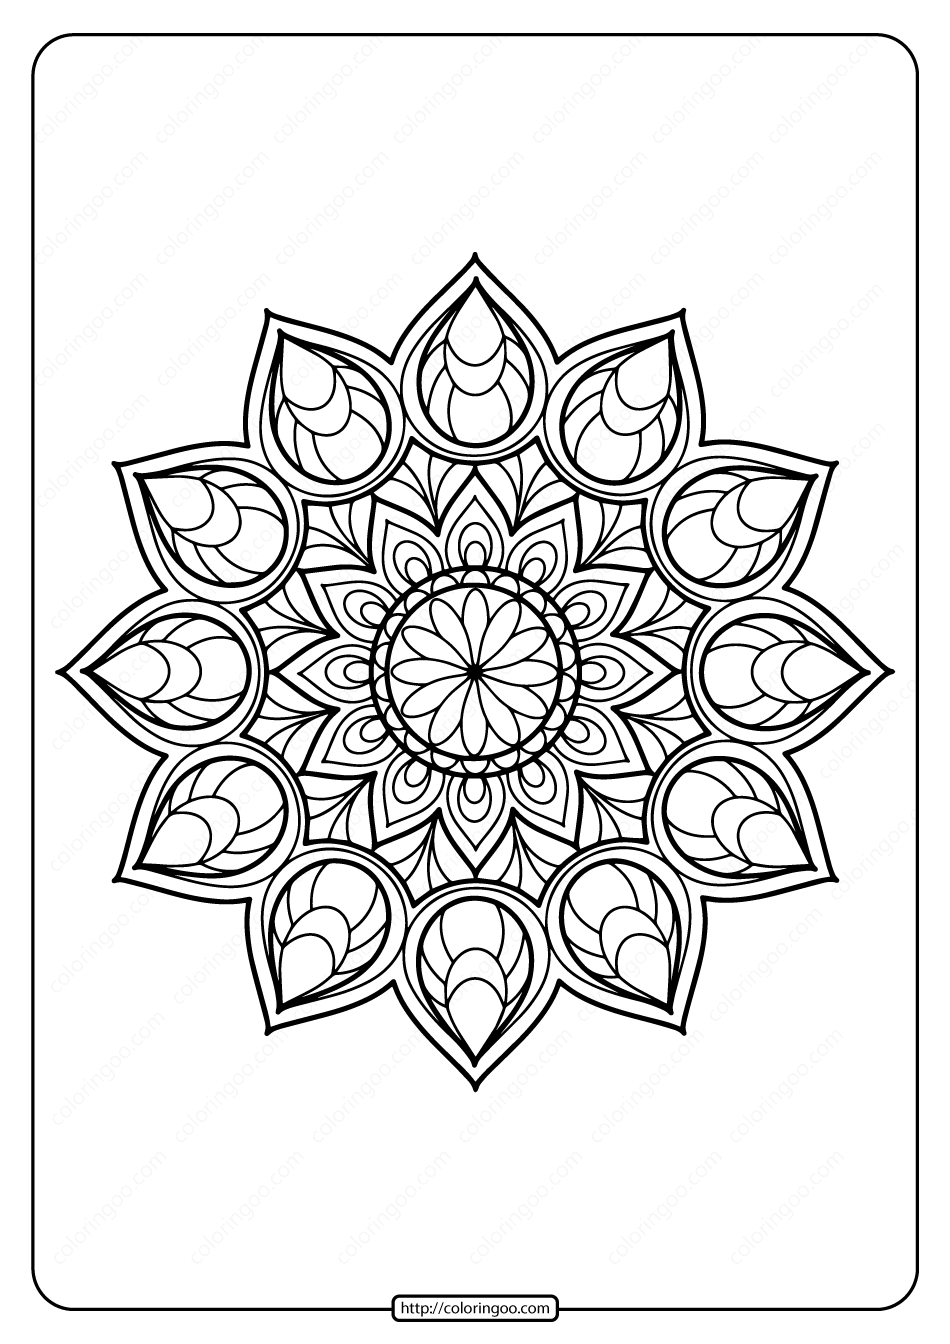 printable pictures to color for adults free printable abstract coloring pages for adults for color printable pictures to adults